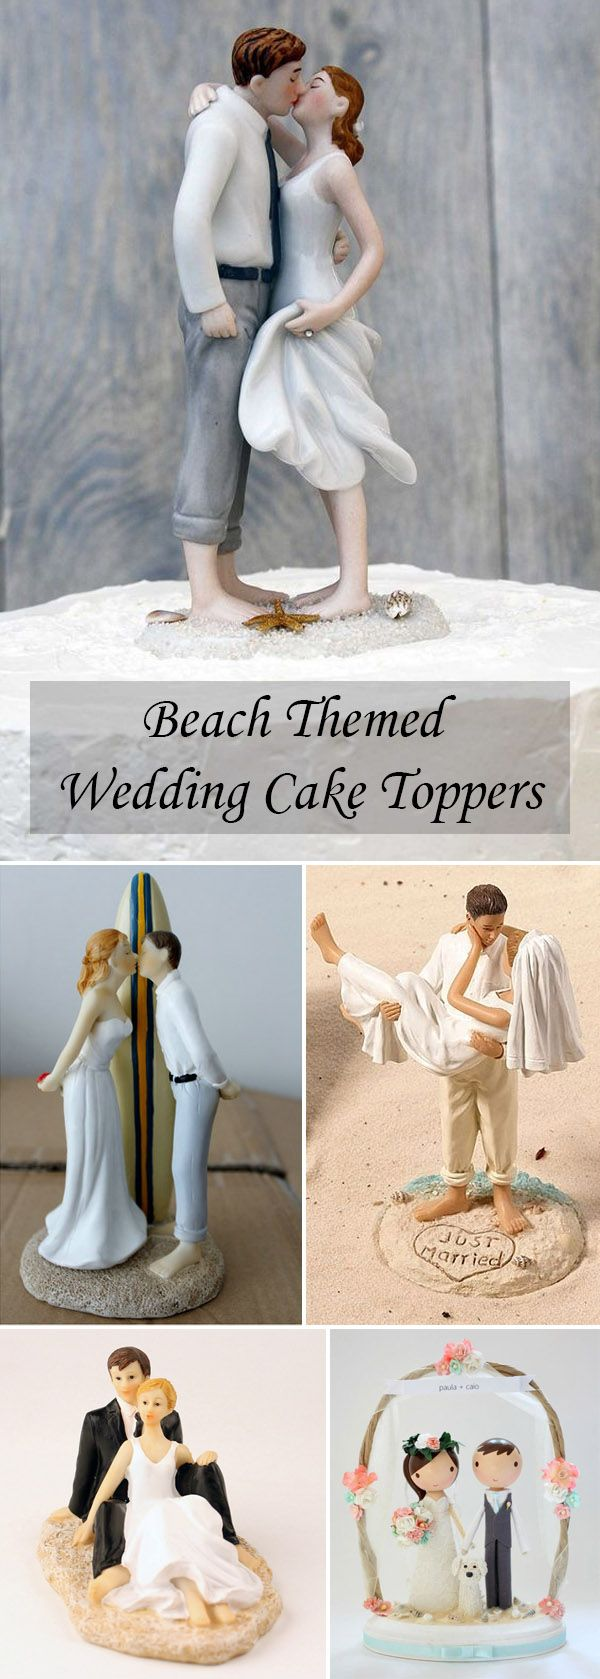 Wedding cake ornaments - Best 20 Wedding Toppers Funny Ideas On Pinterest Funny Cake Toppers Funny Wedding Cakes And Funny Wedding Cake Toppers